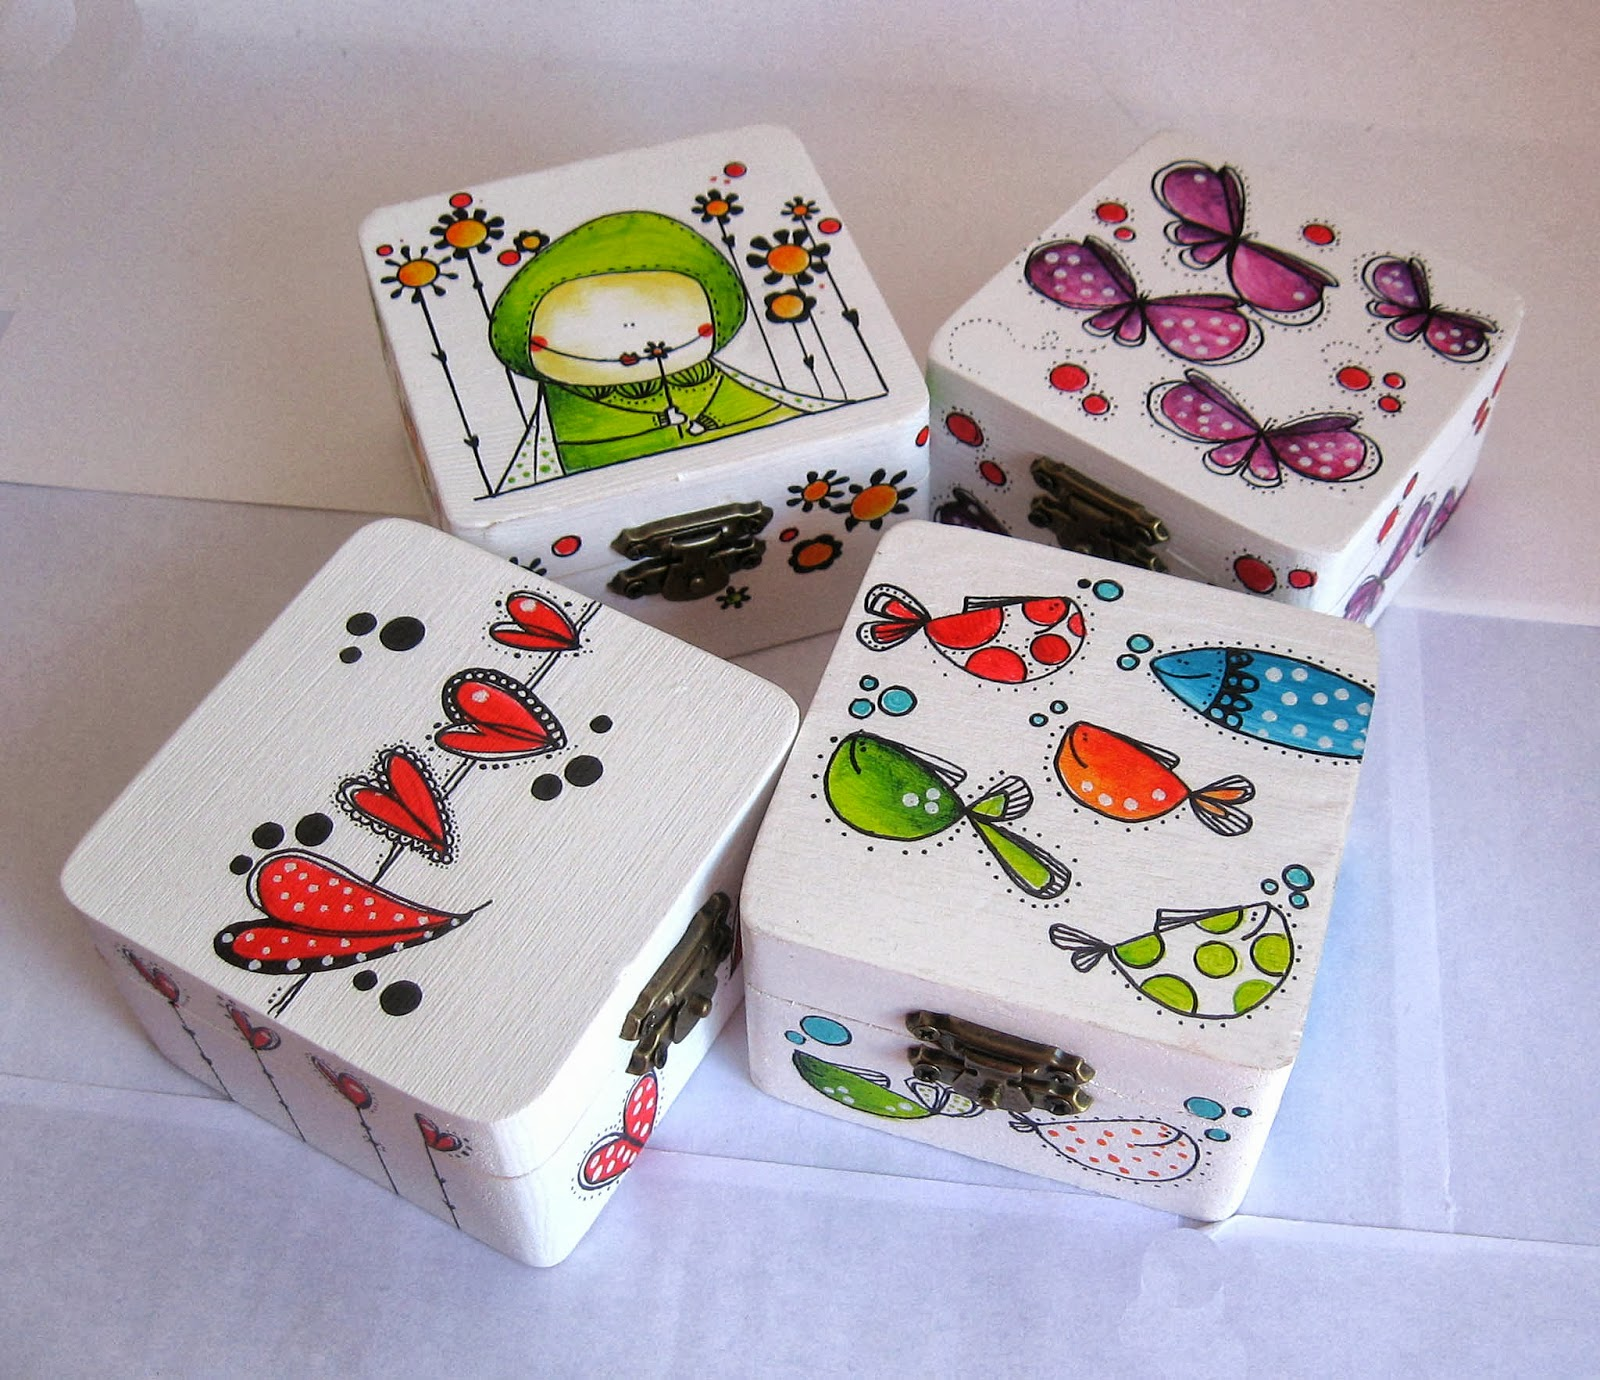 1000 images about cajas de madera pintadas mano on pinterest for Pintura para decoupage